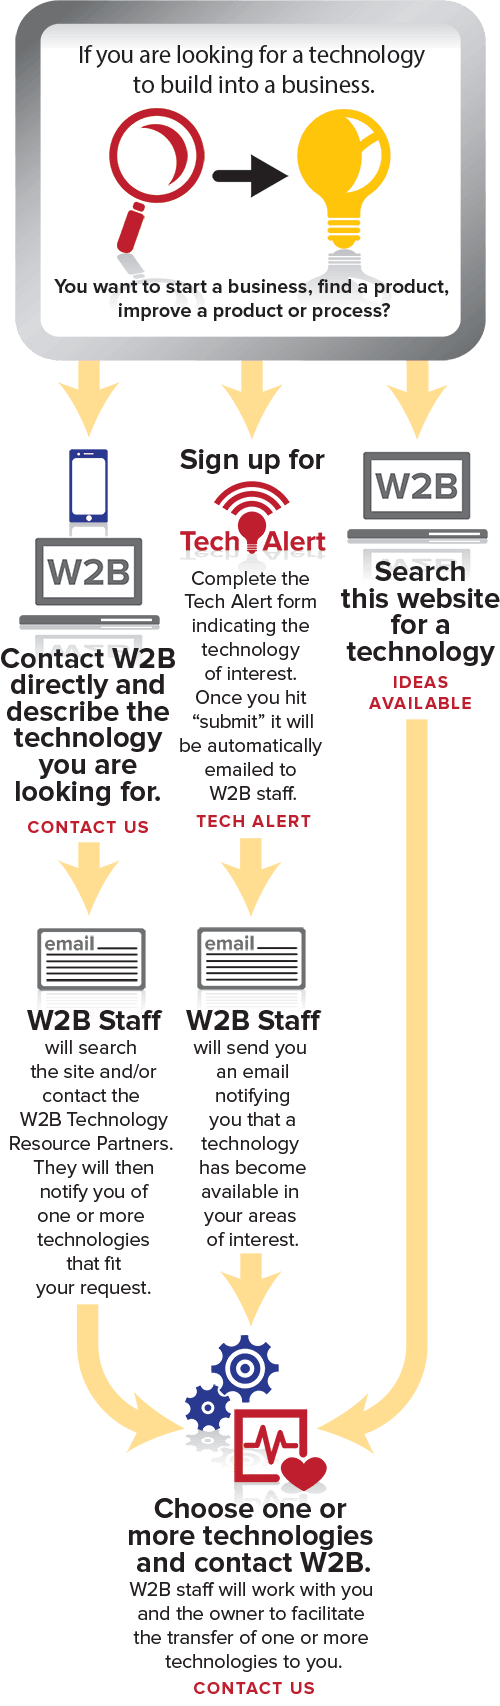 Infographic - Looking for Technology (Vertical)